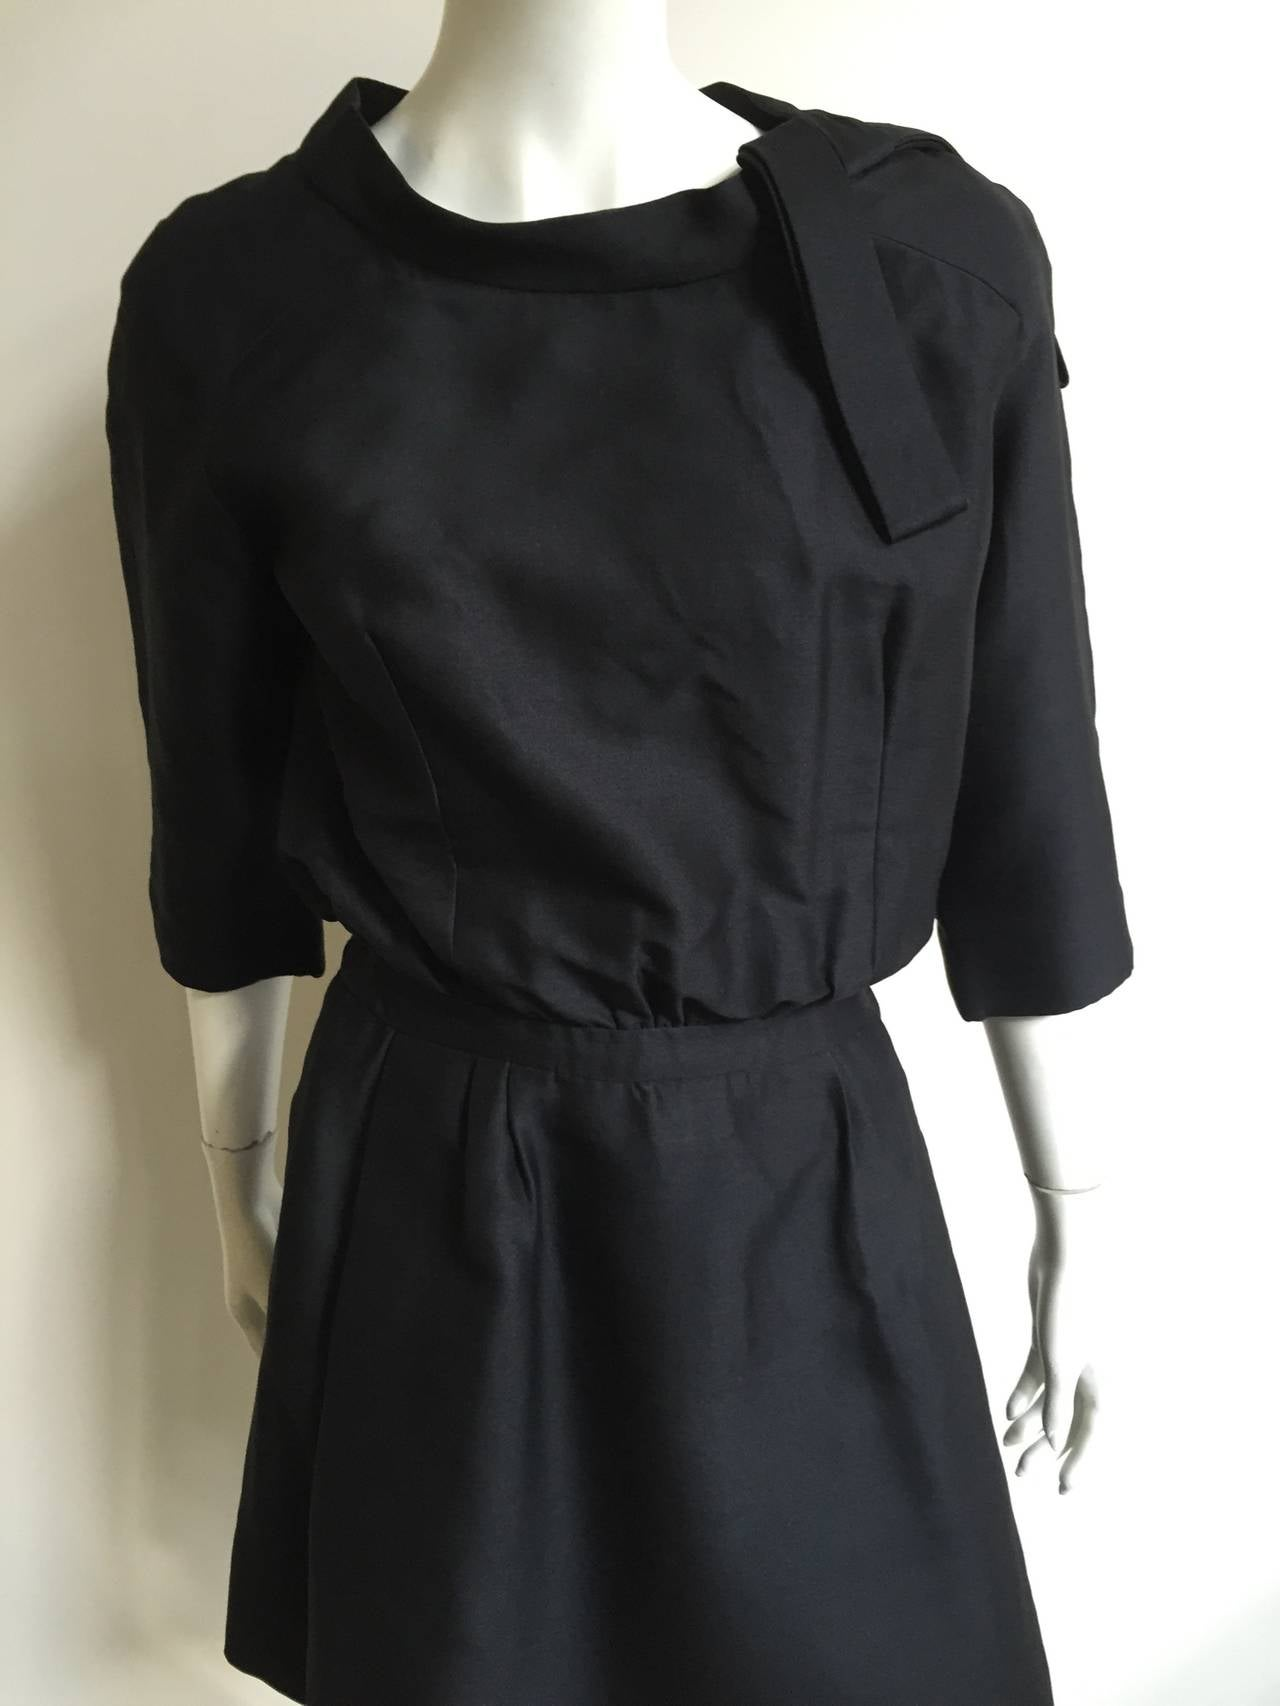 Dior 1950s Black Silk Evening Dress With Pockets Size 6. 2